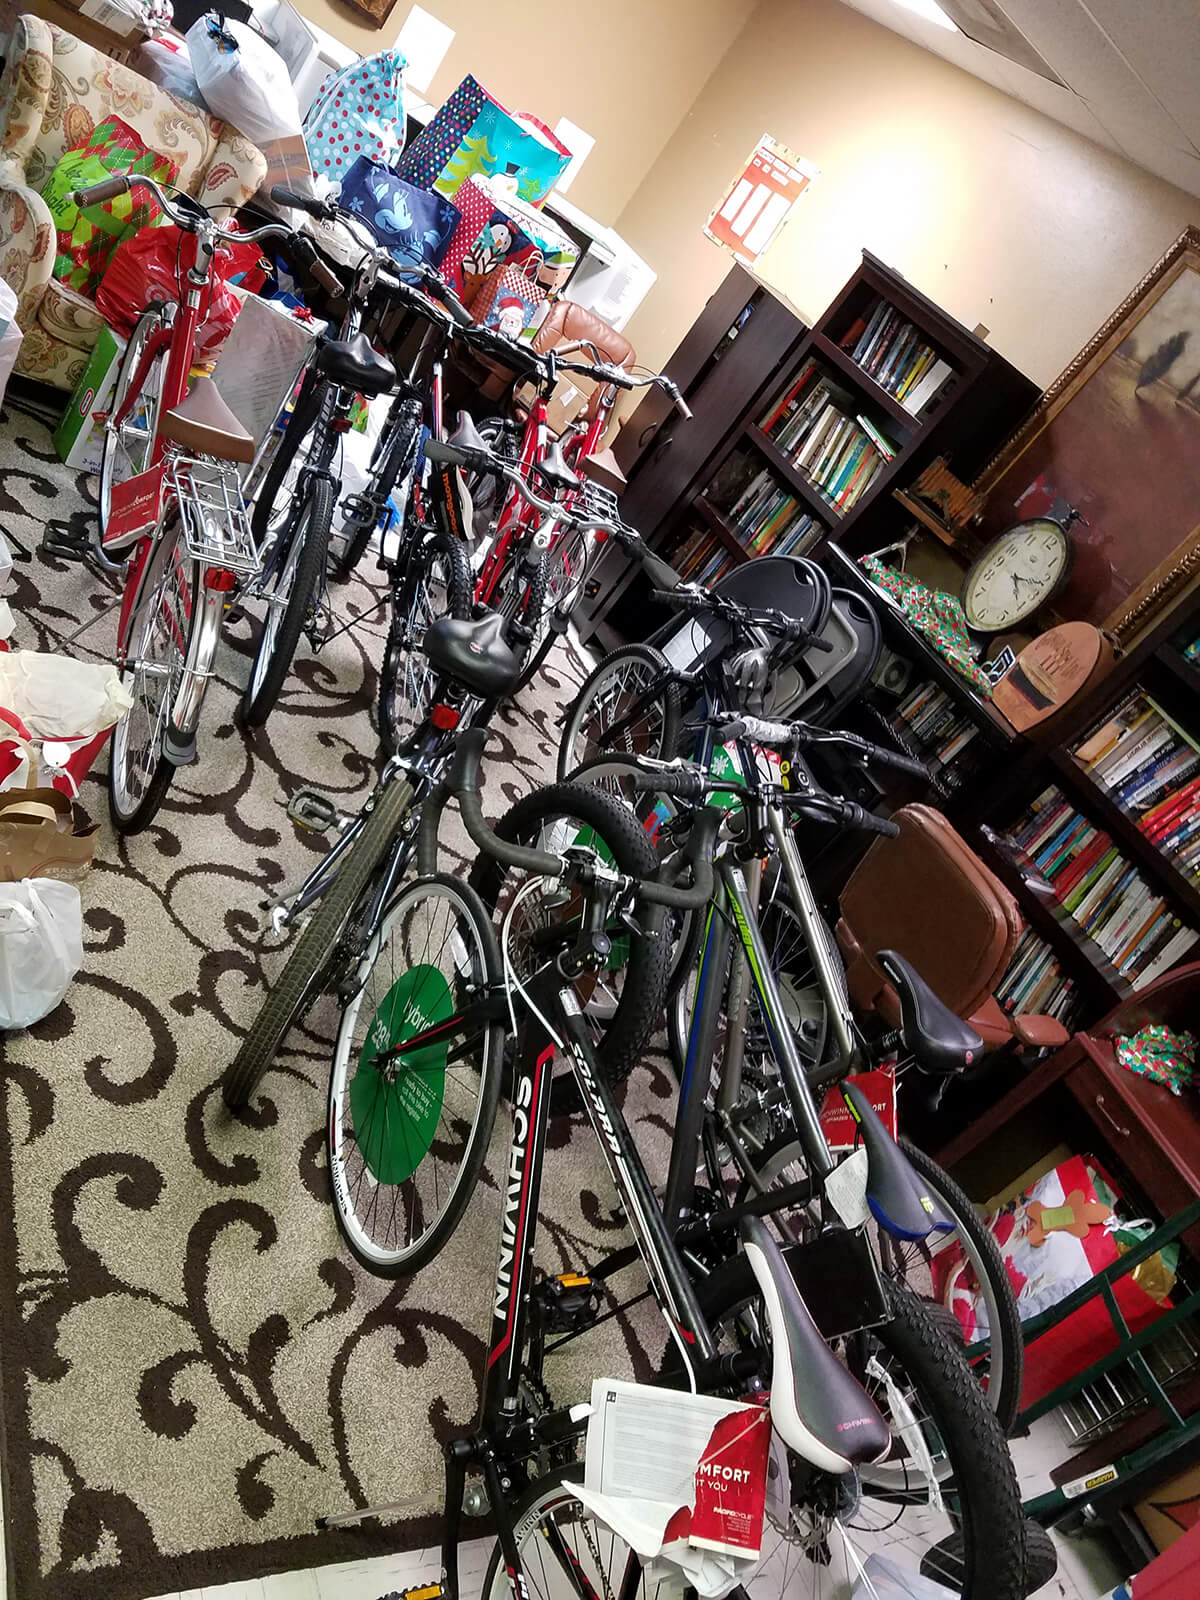 Bicycles hiden away for their Christmas morning reveal at the Arlington Life Shelter